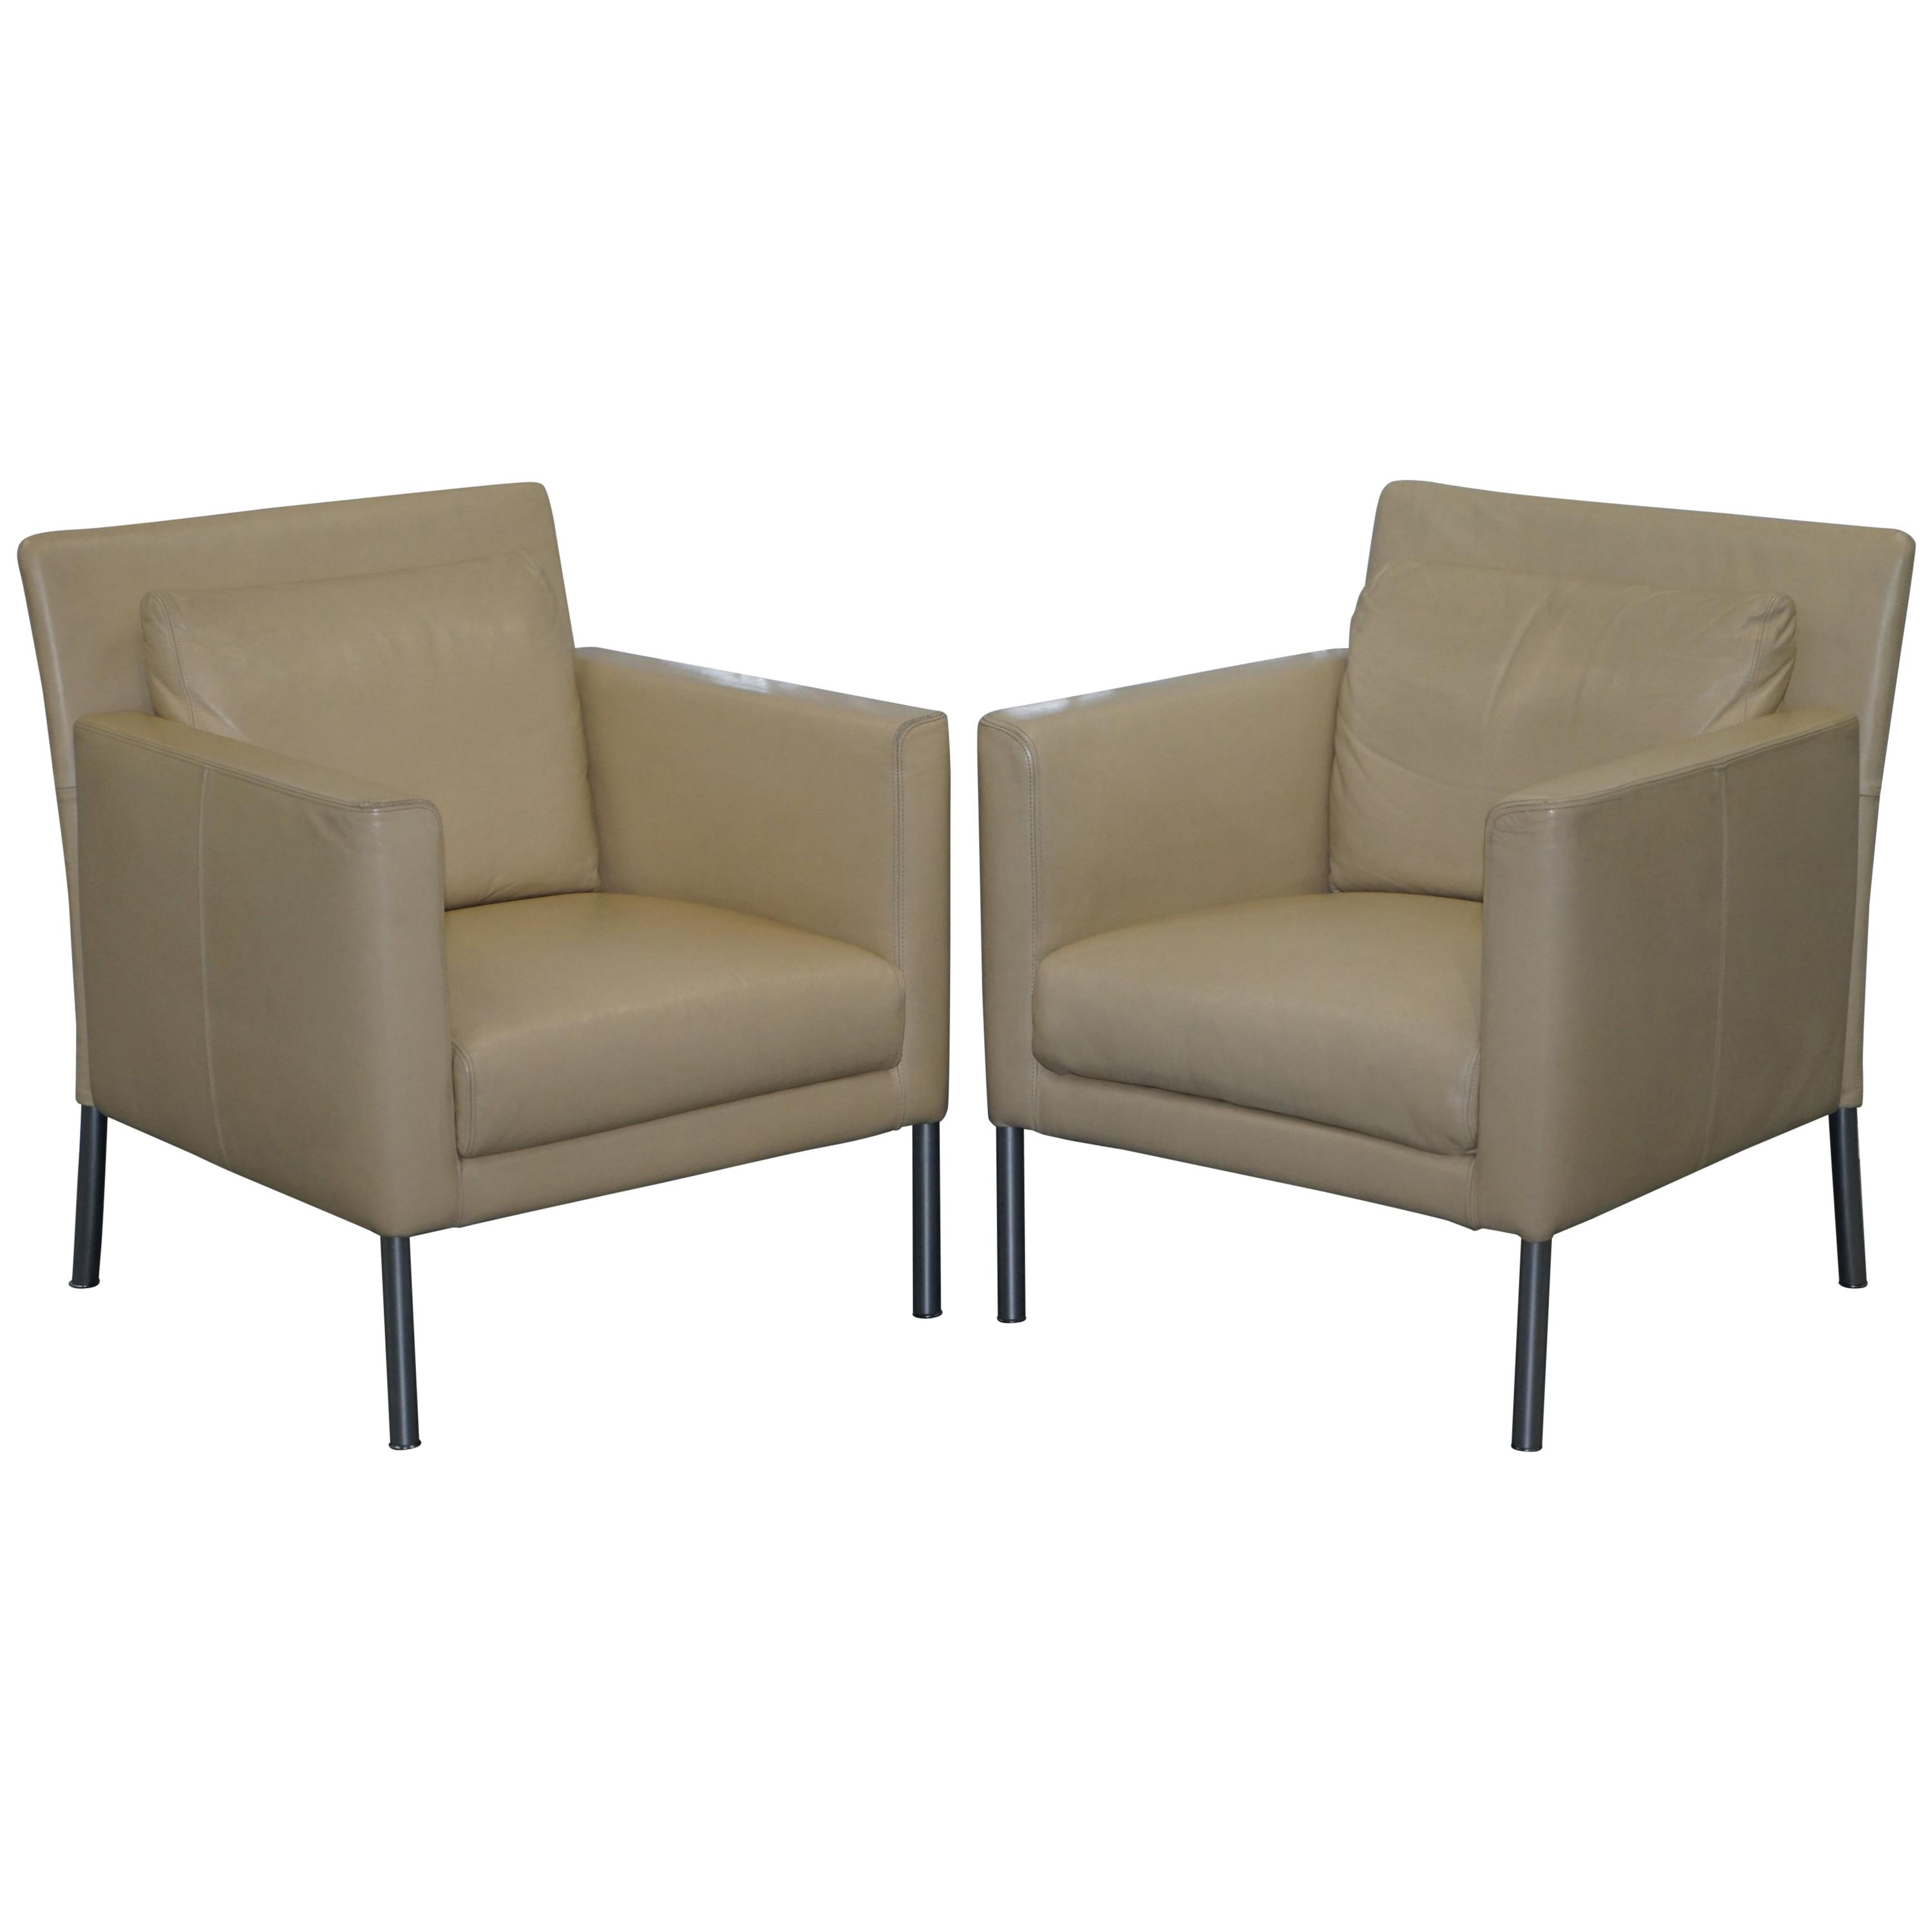 Pair of Walter Knoll Jason 391 Cream Leather Contemporary Armchairs For Sale